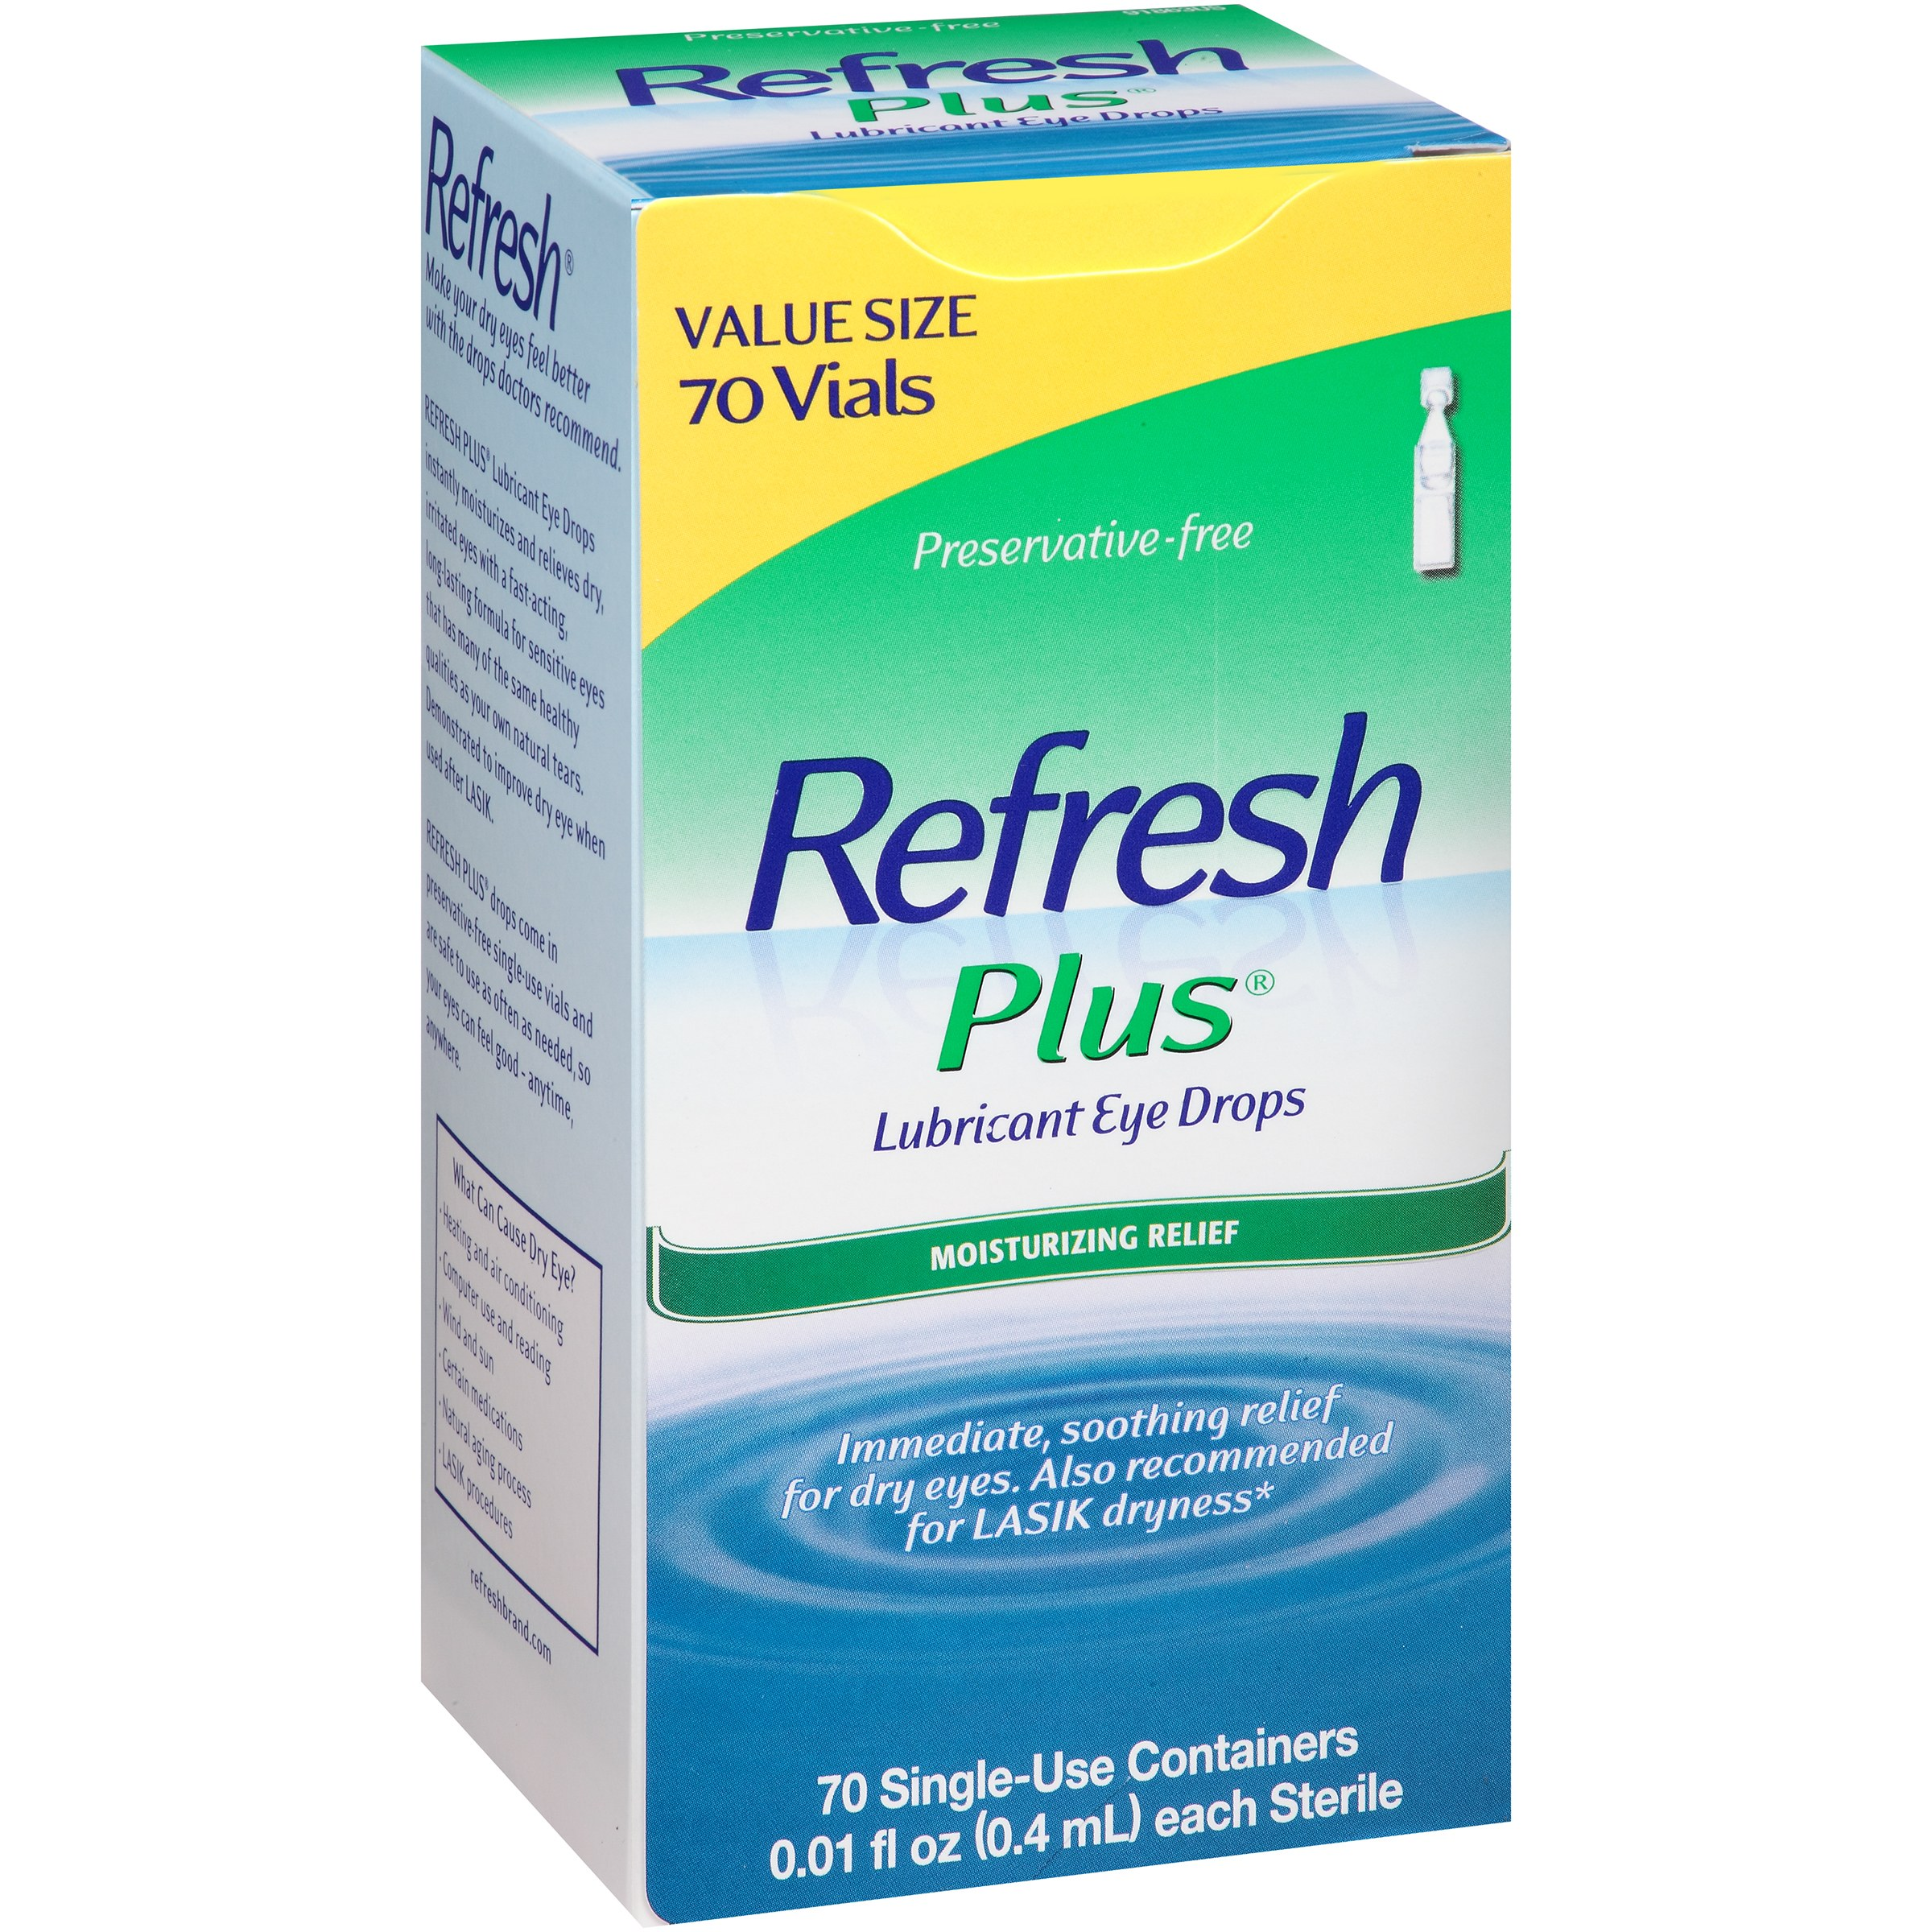 Refresh Plus Lubricant Eye Drops Value Size, 70 count, 0.01 fl oz